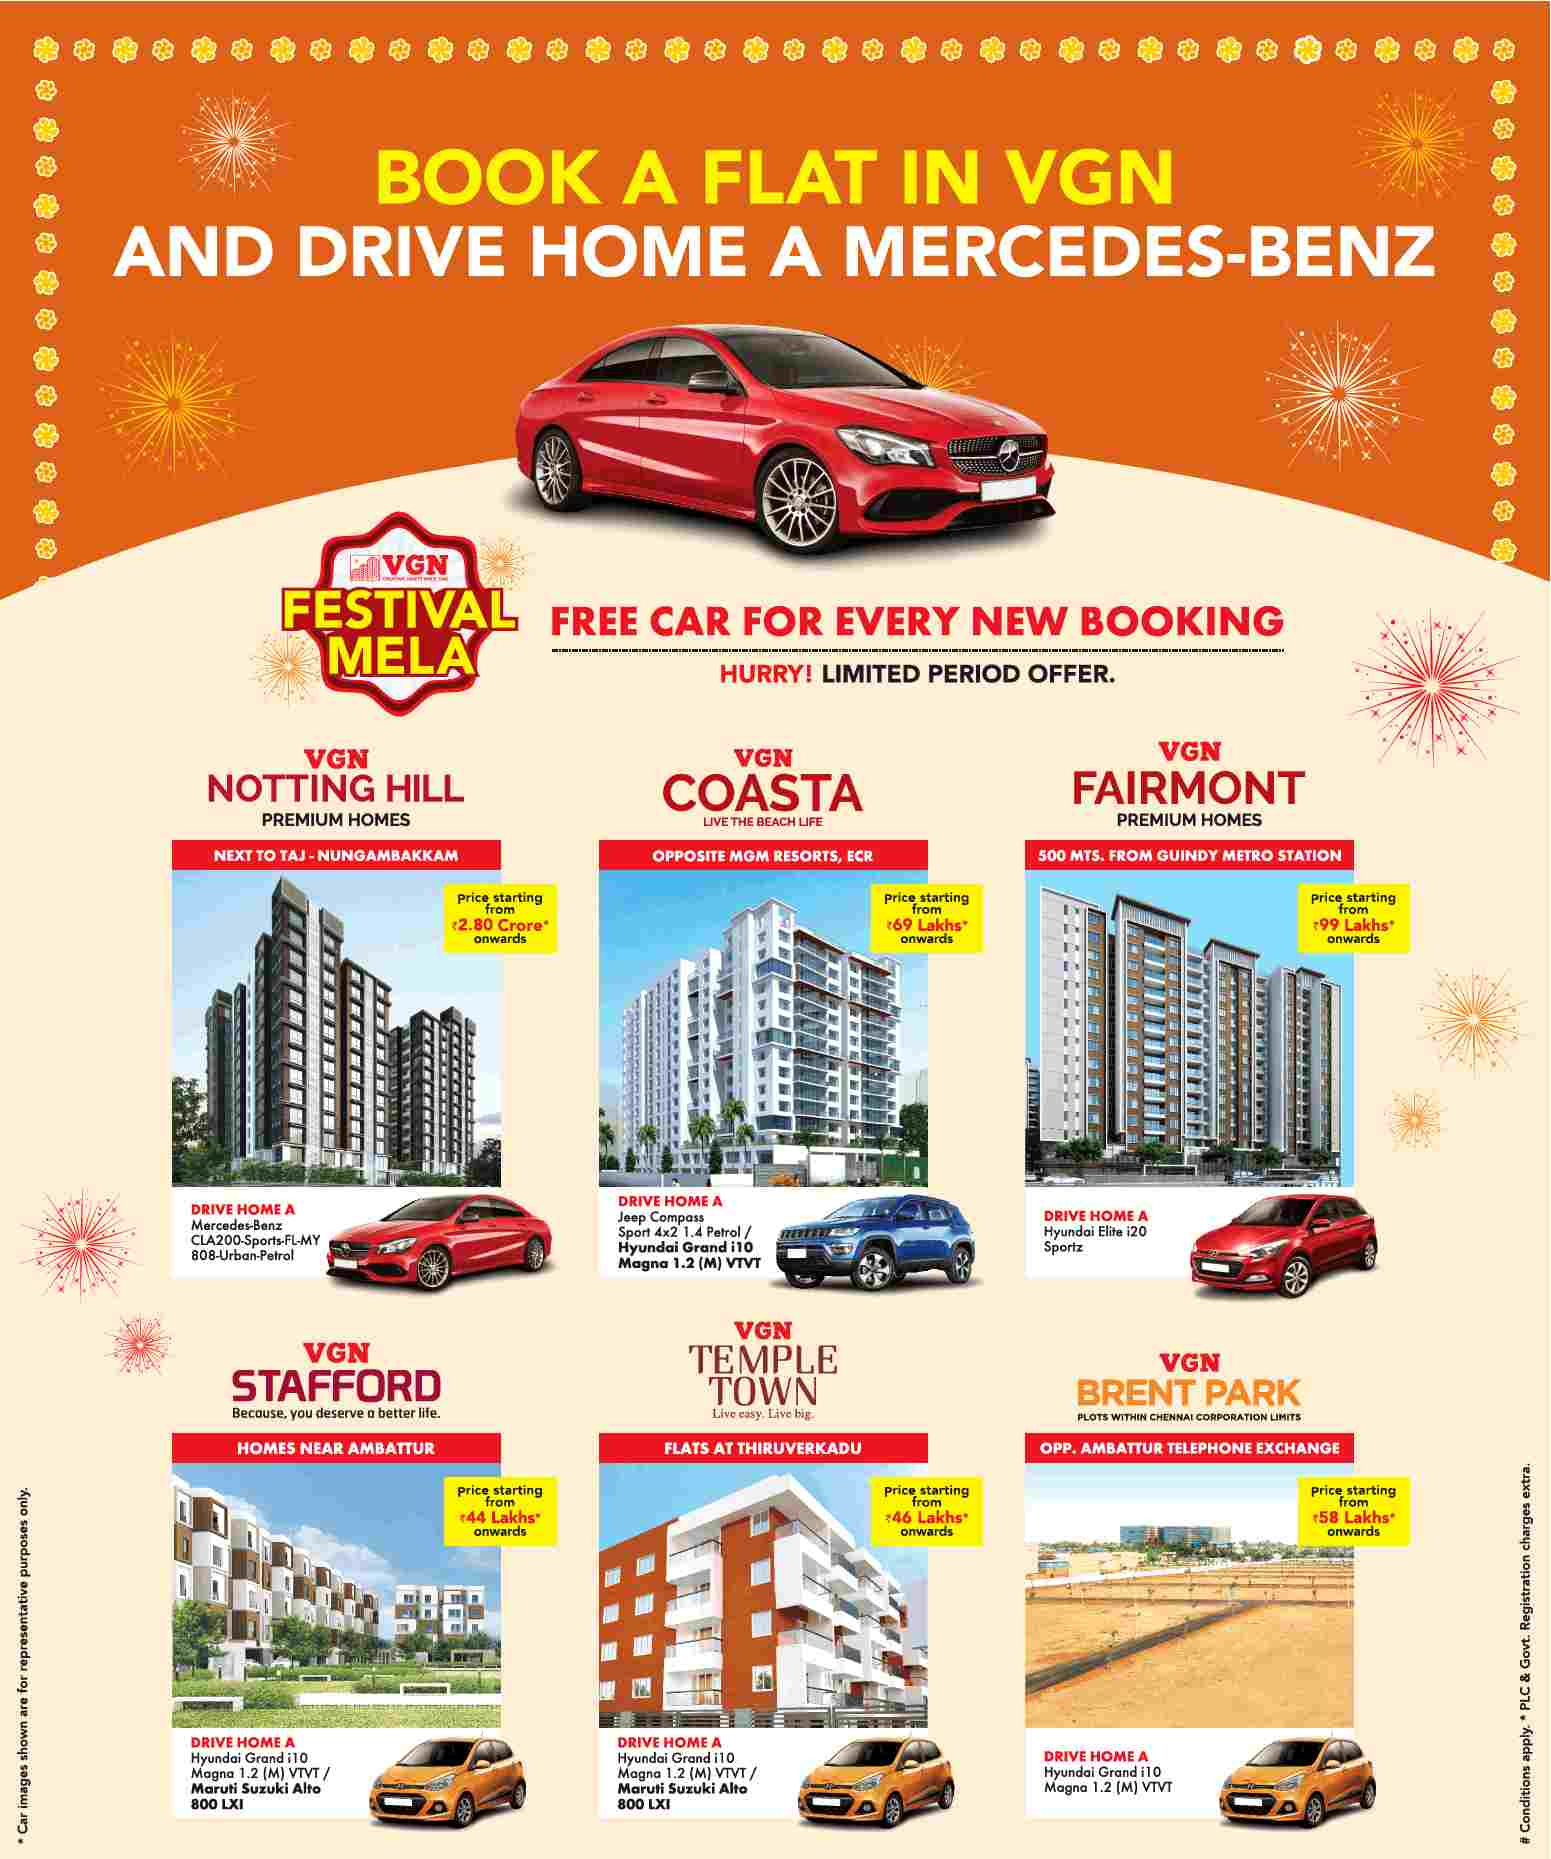 Get a free car on every booking at VGN properties in Chennai